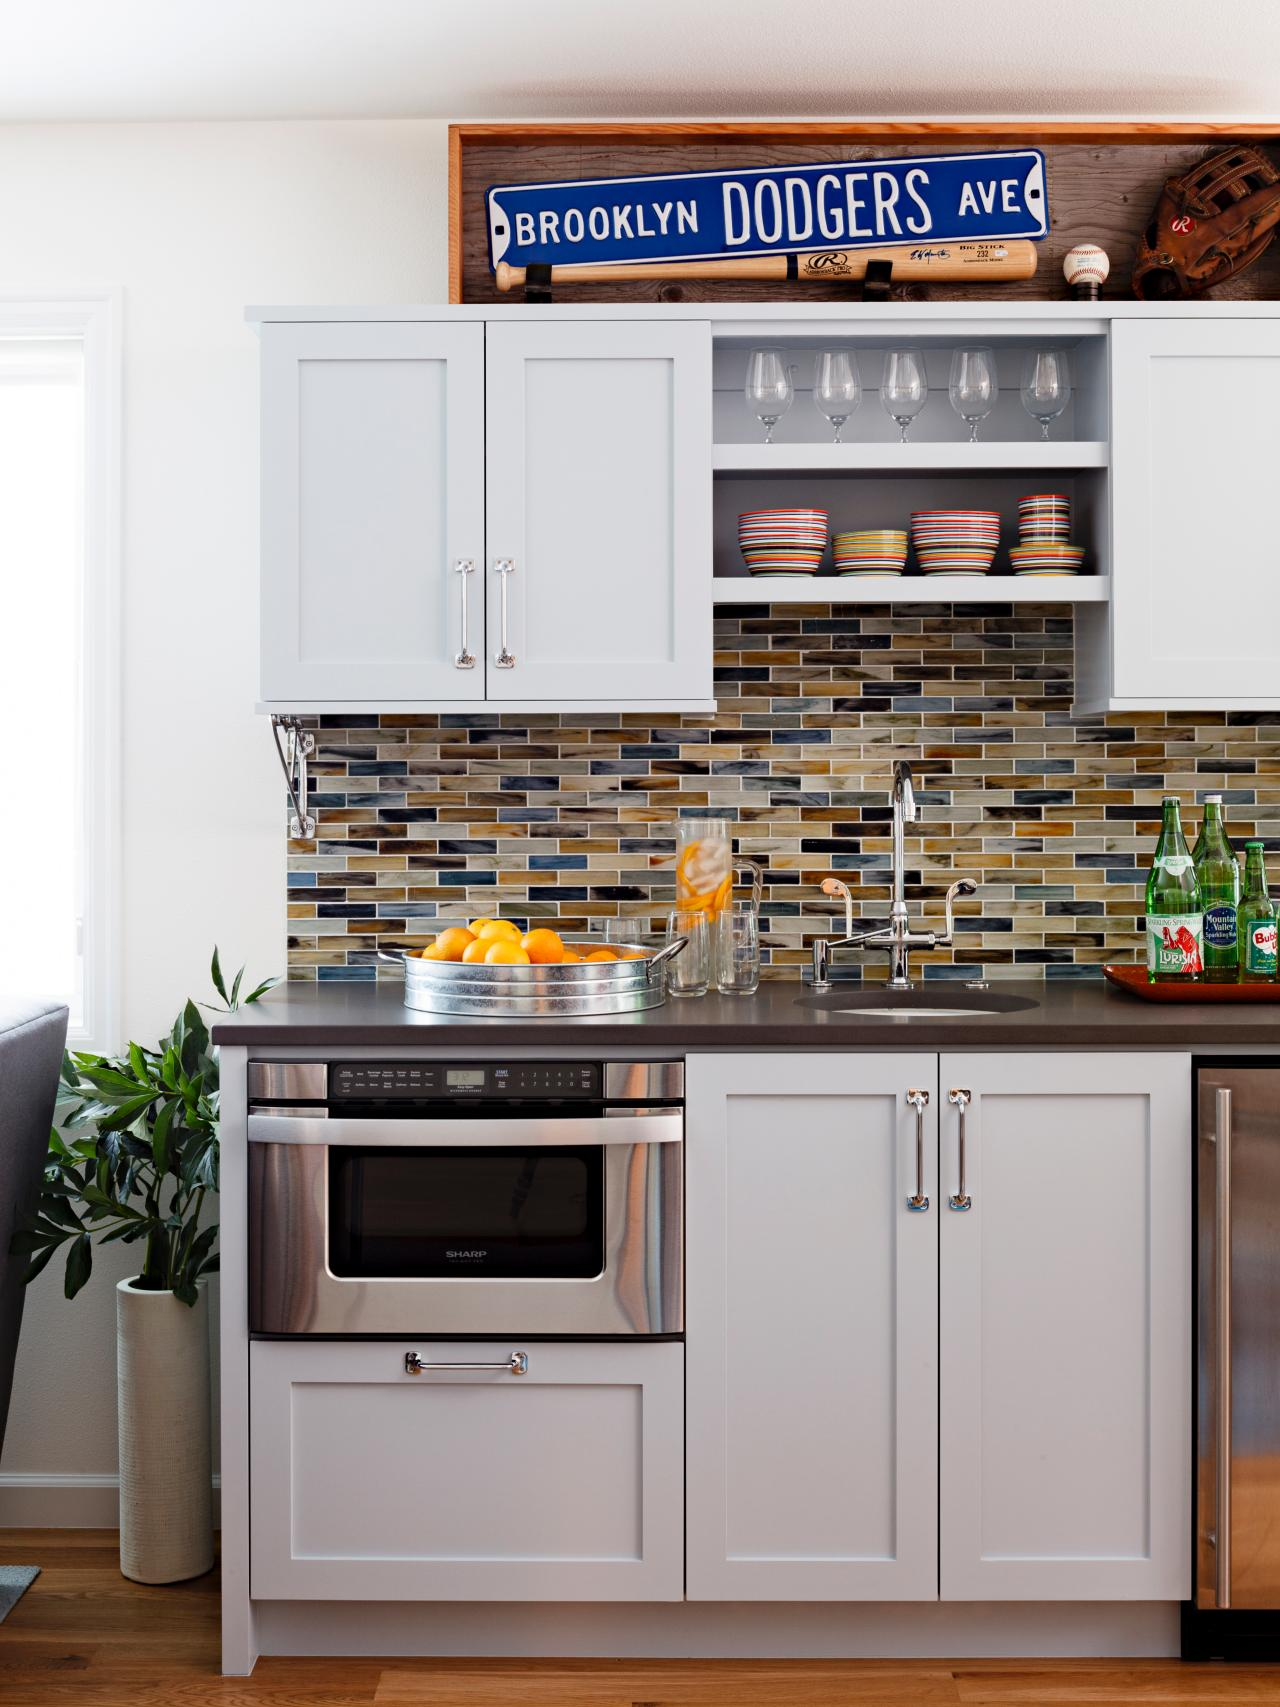 backsplash for small kitchen 18 unique kitchen backsplash design ideas style motivation 2683